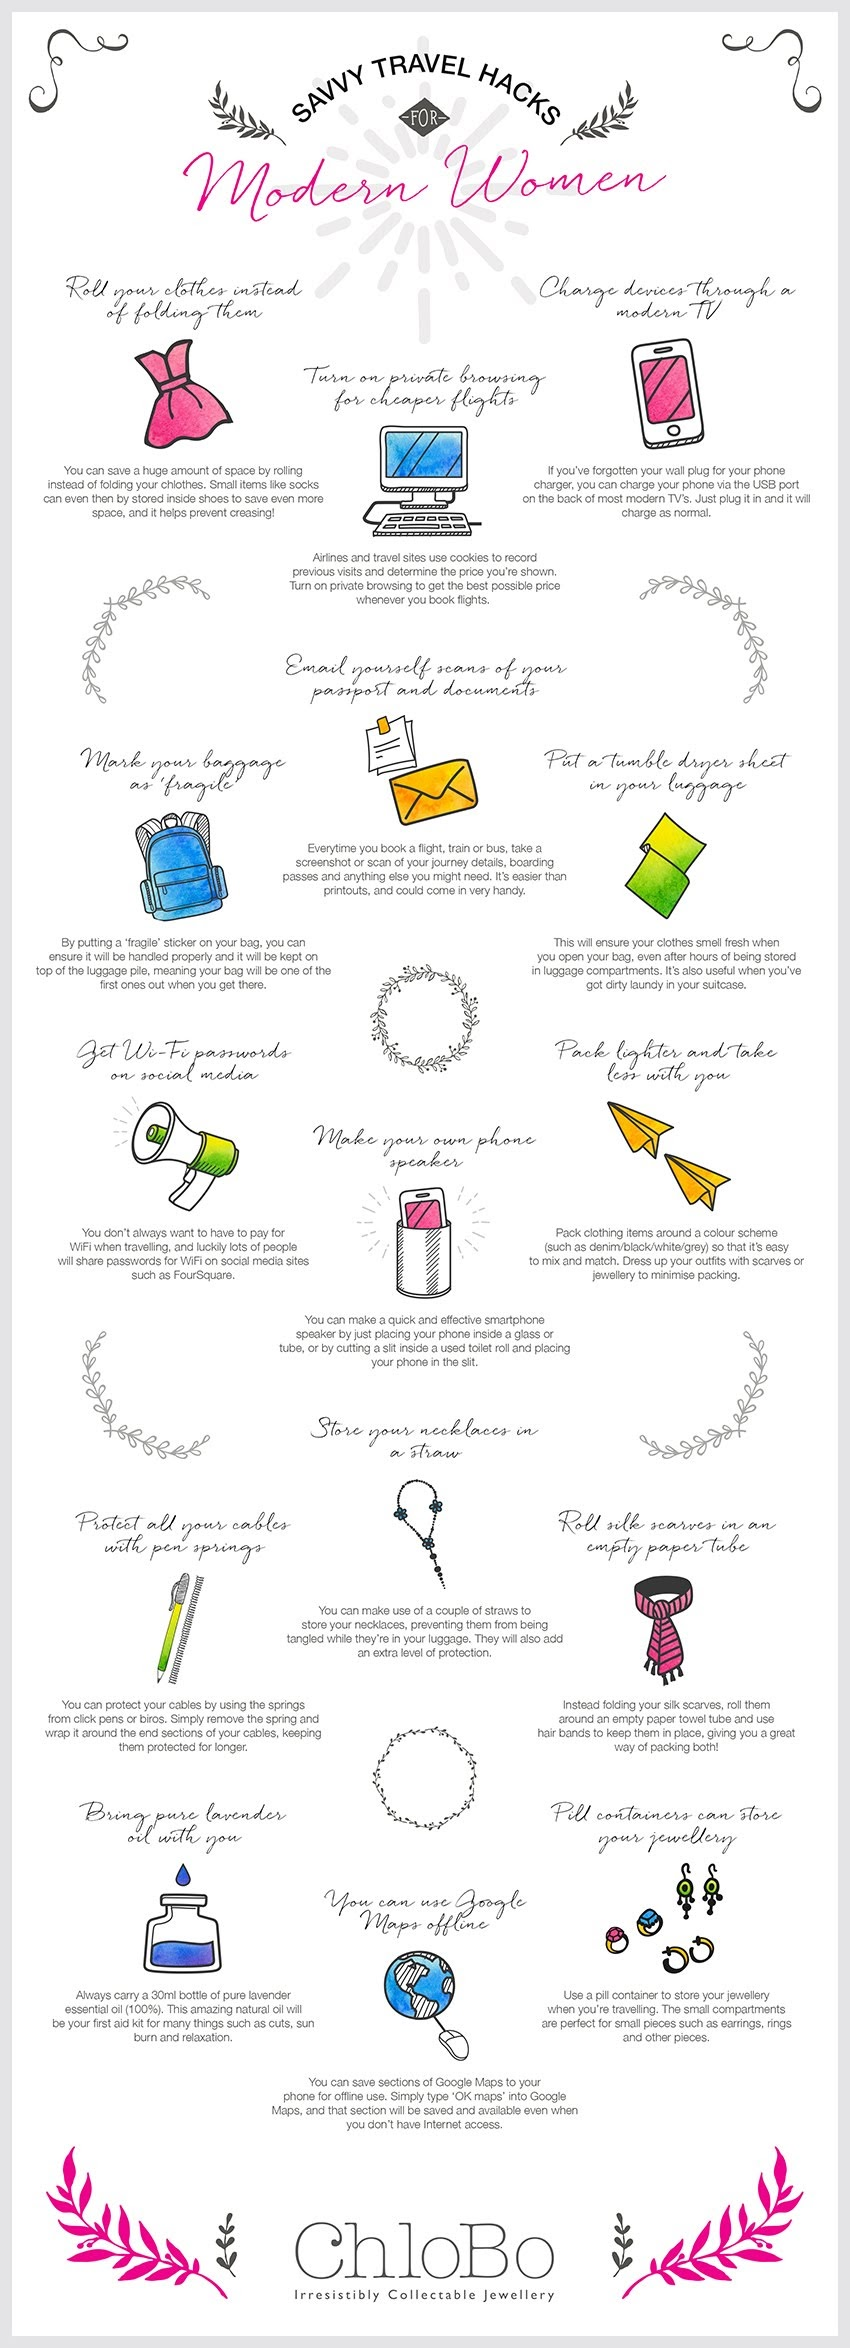 Travel Hacks for the Modern Woman #infographic